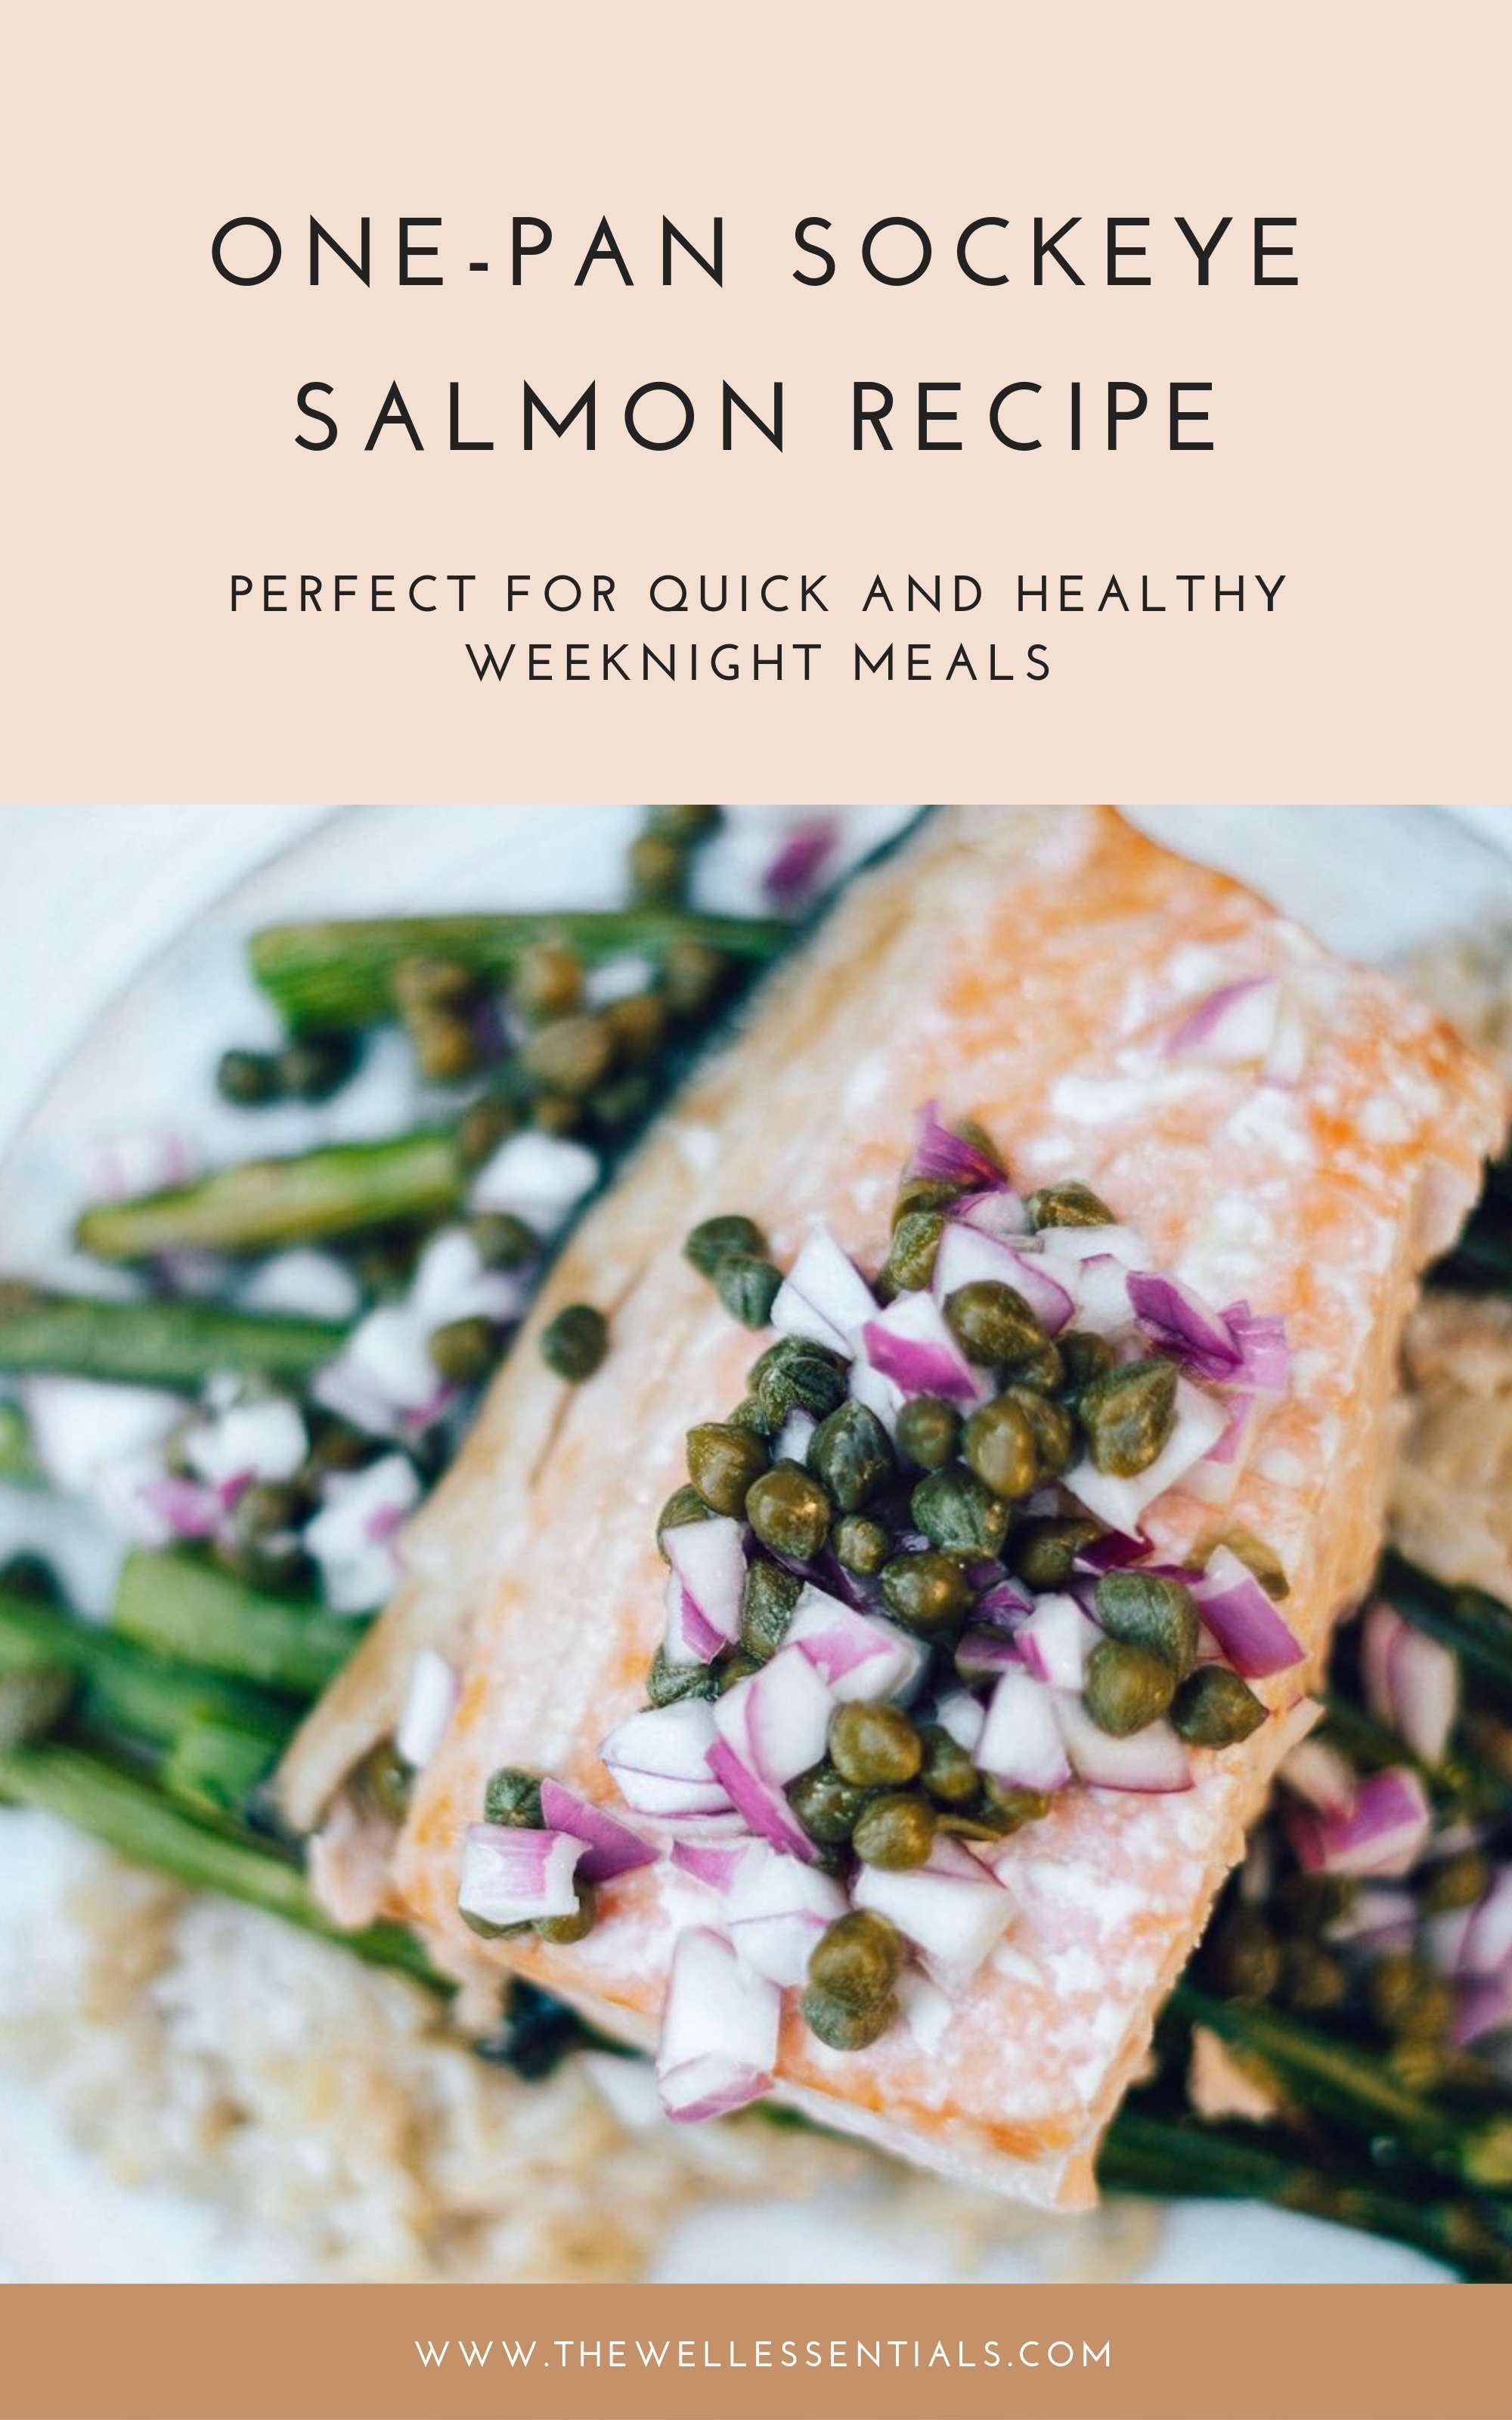 One-Pan Sockeye Salmon Recipe With Red Onion And Capers - The Well Essentials - Sustainable Fishing